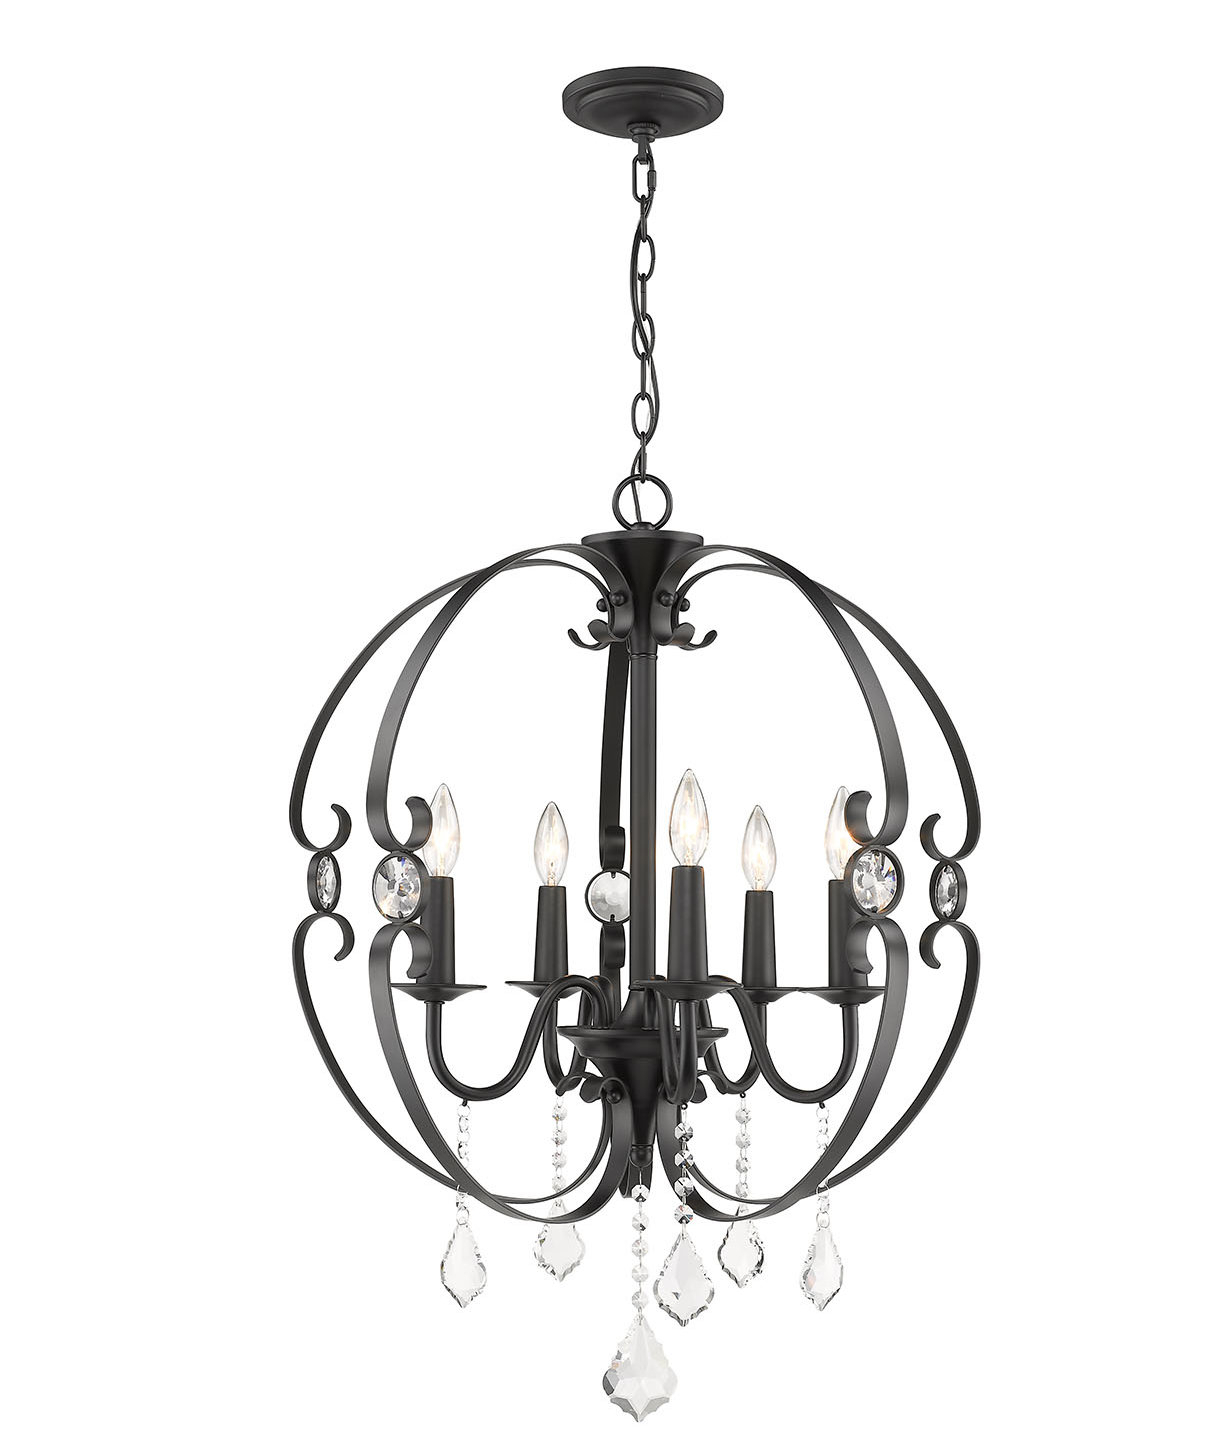 Whitcher 5 Light Globe Chandelier Throughout Gaines 5 Light Shaded Chandeliers (View 13 of 30)